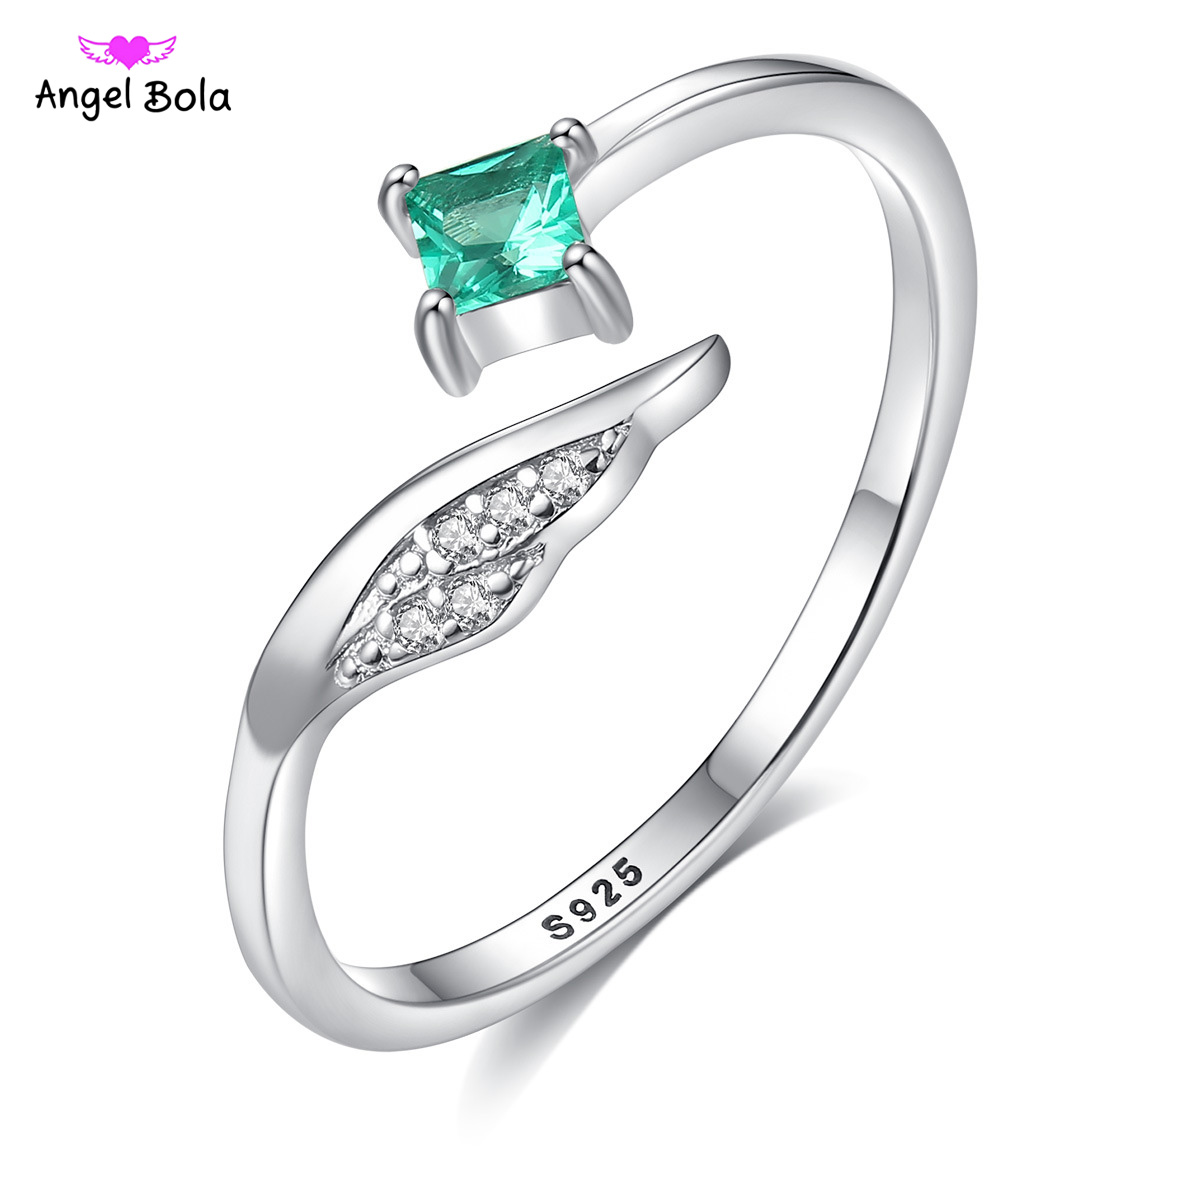 Square Sterling Silver S925 Crystal Ring for Women Fashion Bague Wedding Bizuteria Gemstone White s925 Jewelry Ring